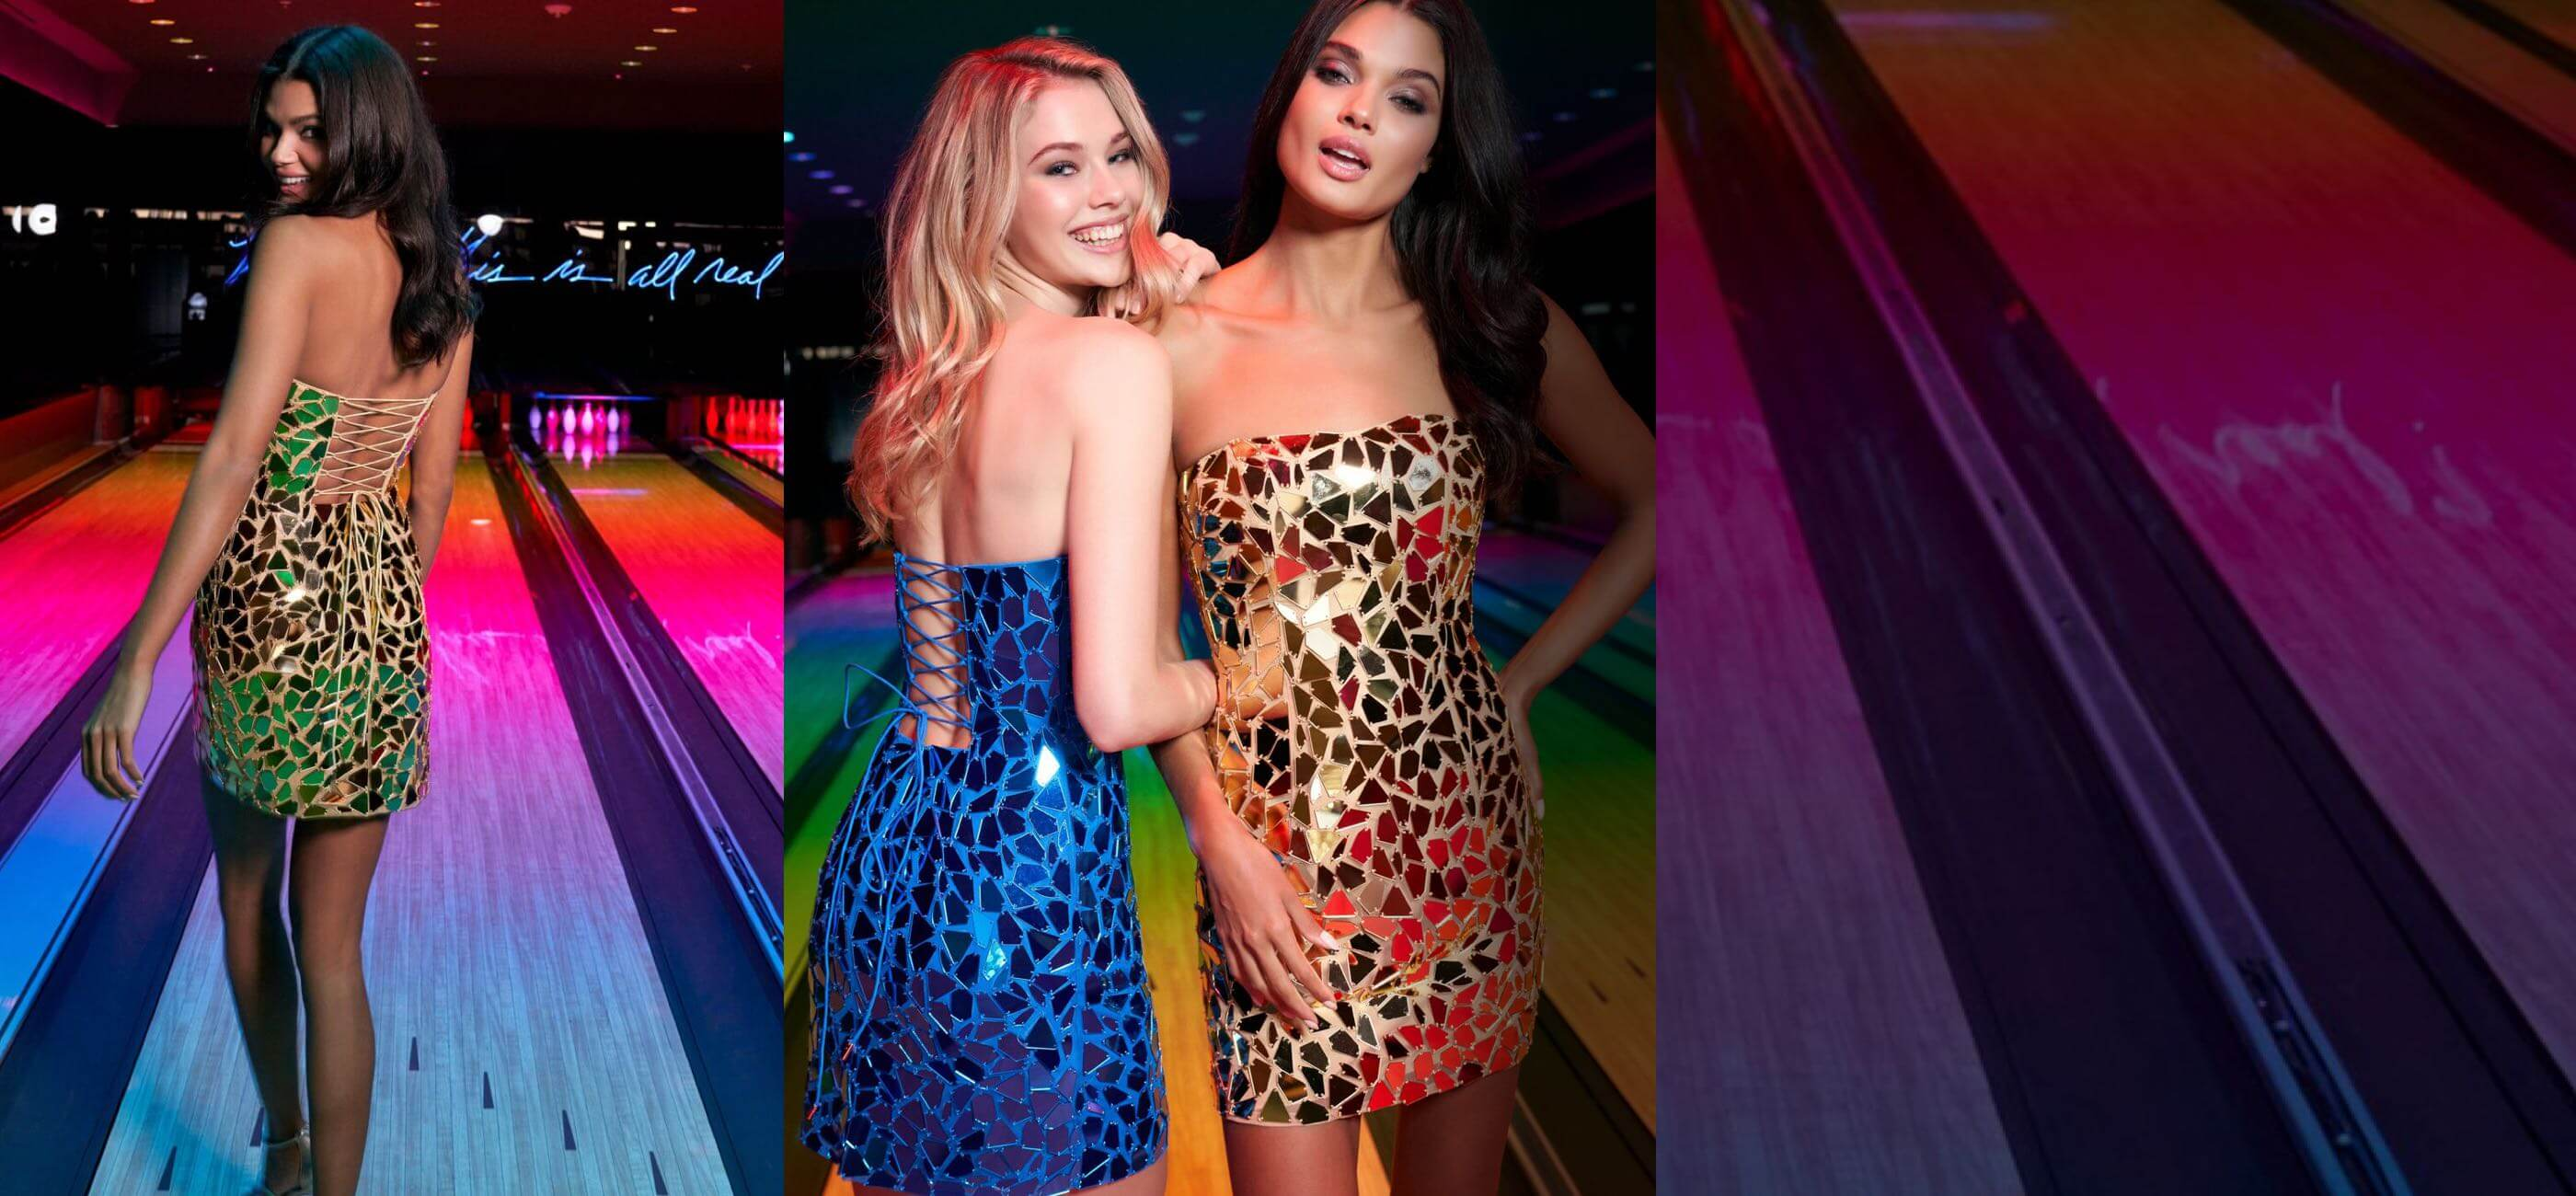 Blonde & Brunette Girls in Sherri Hill Homecoming Dresses are playing bowling. Desktop Image